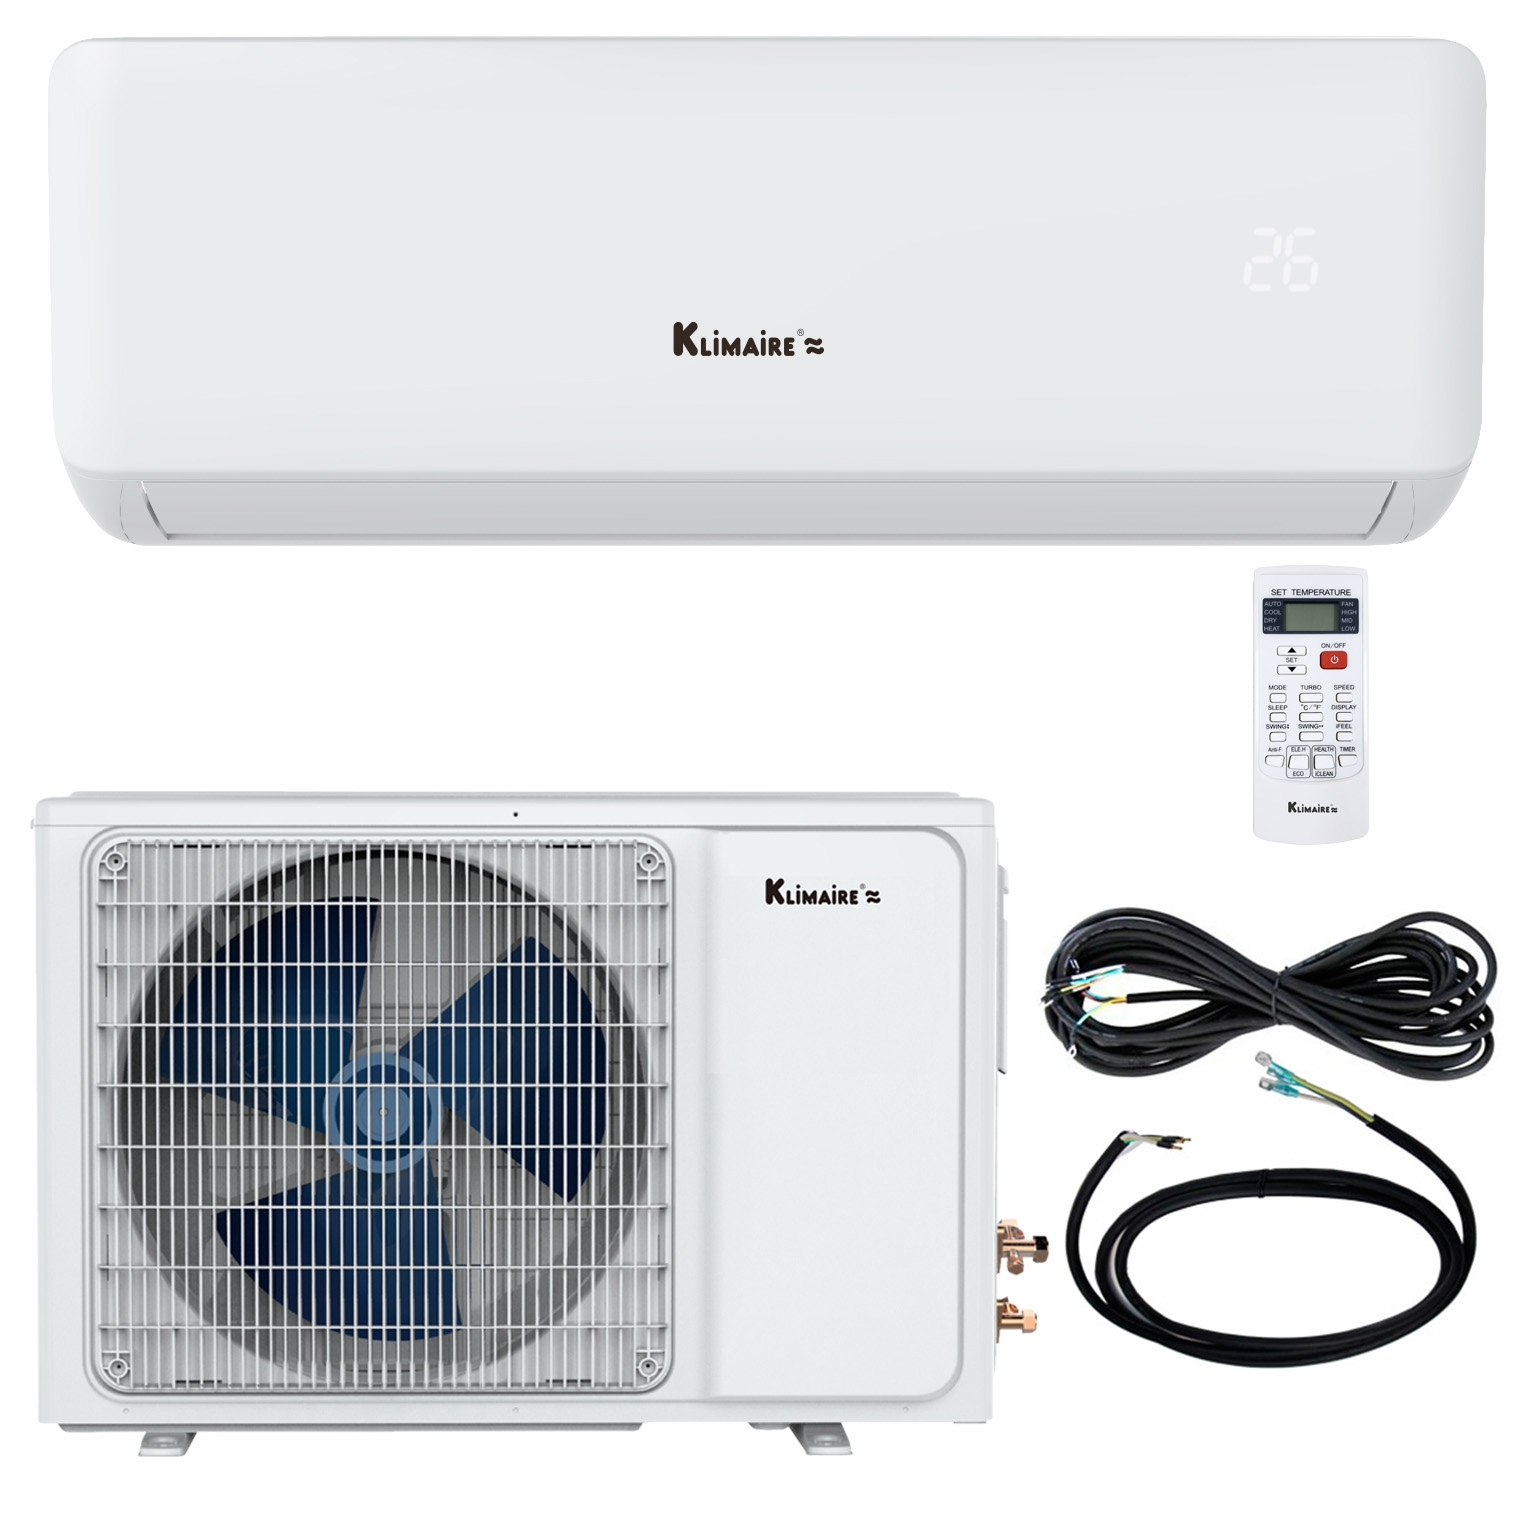 hight resolution of 18 000 btu klimaire 17 seer ductless mini split inverter air conditioner heat pump and healthy